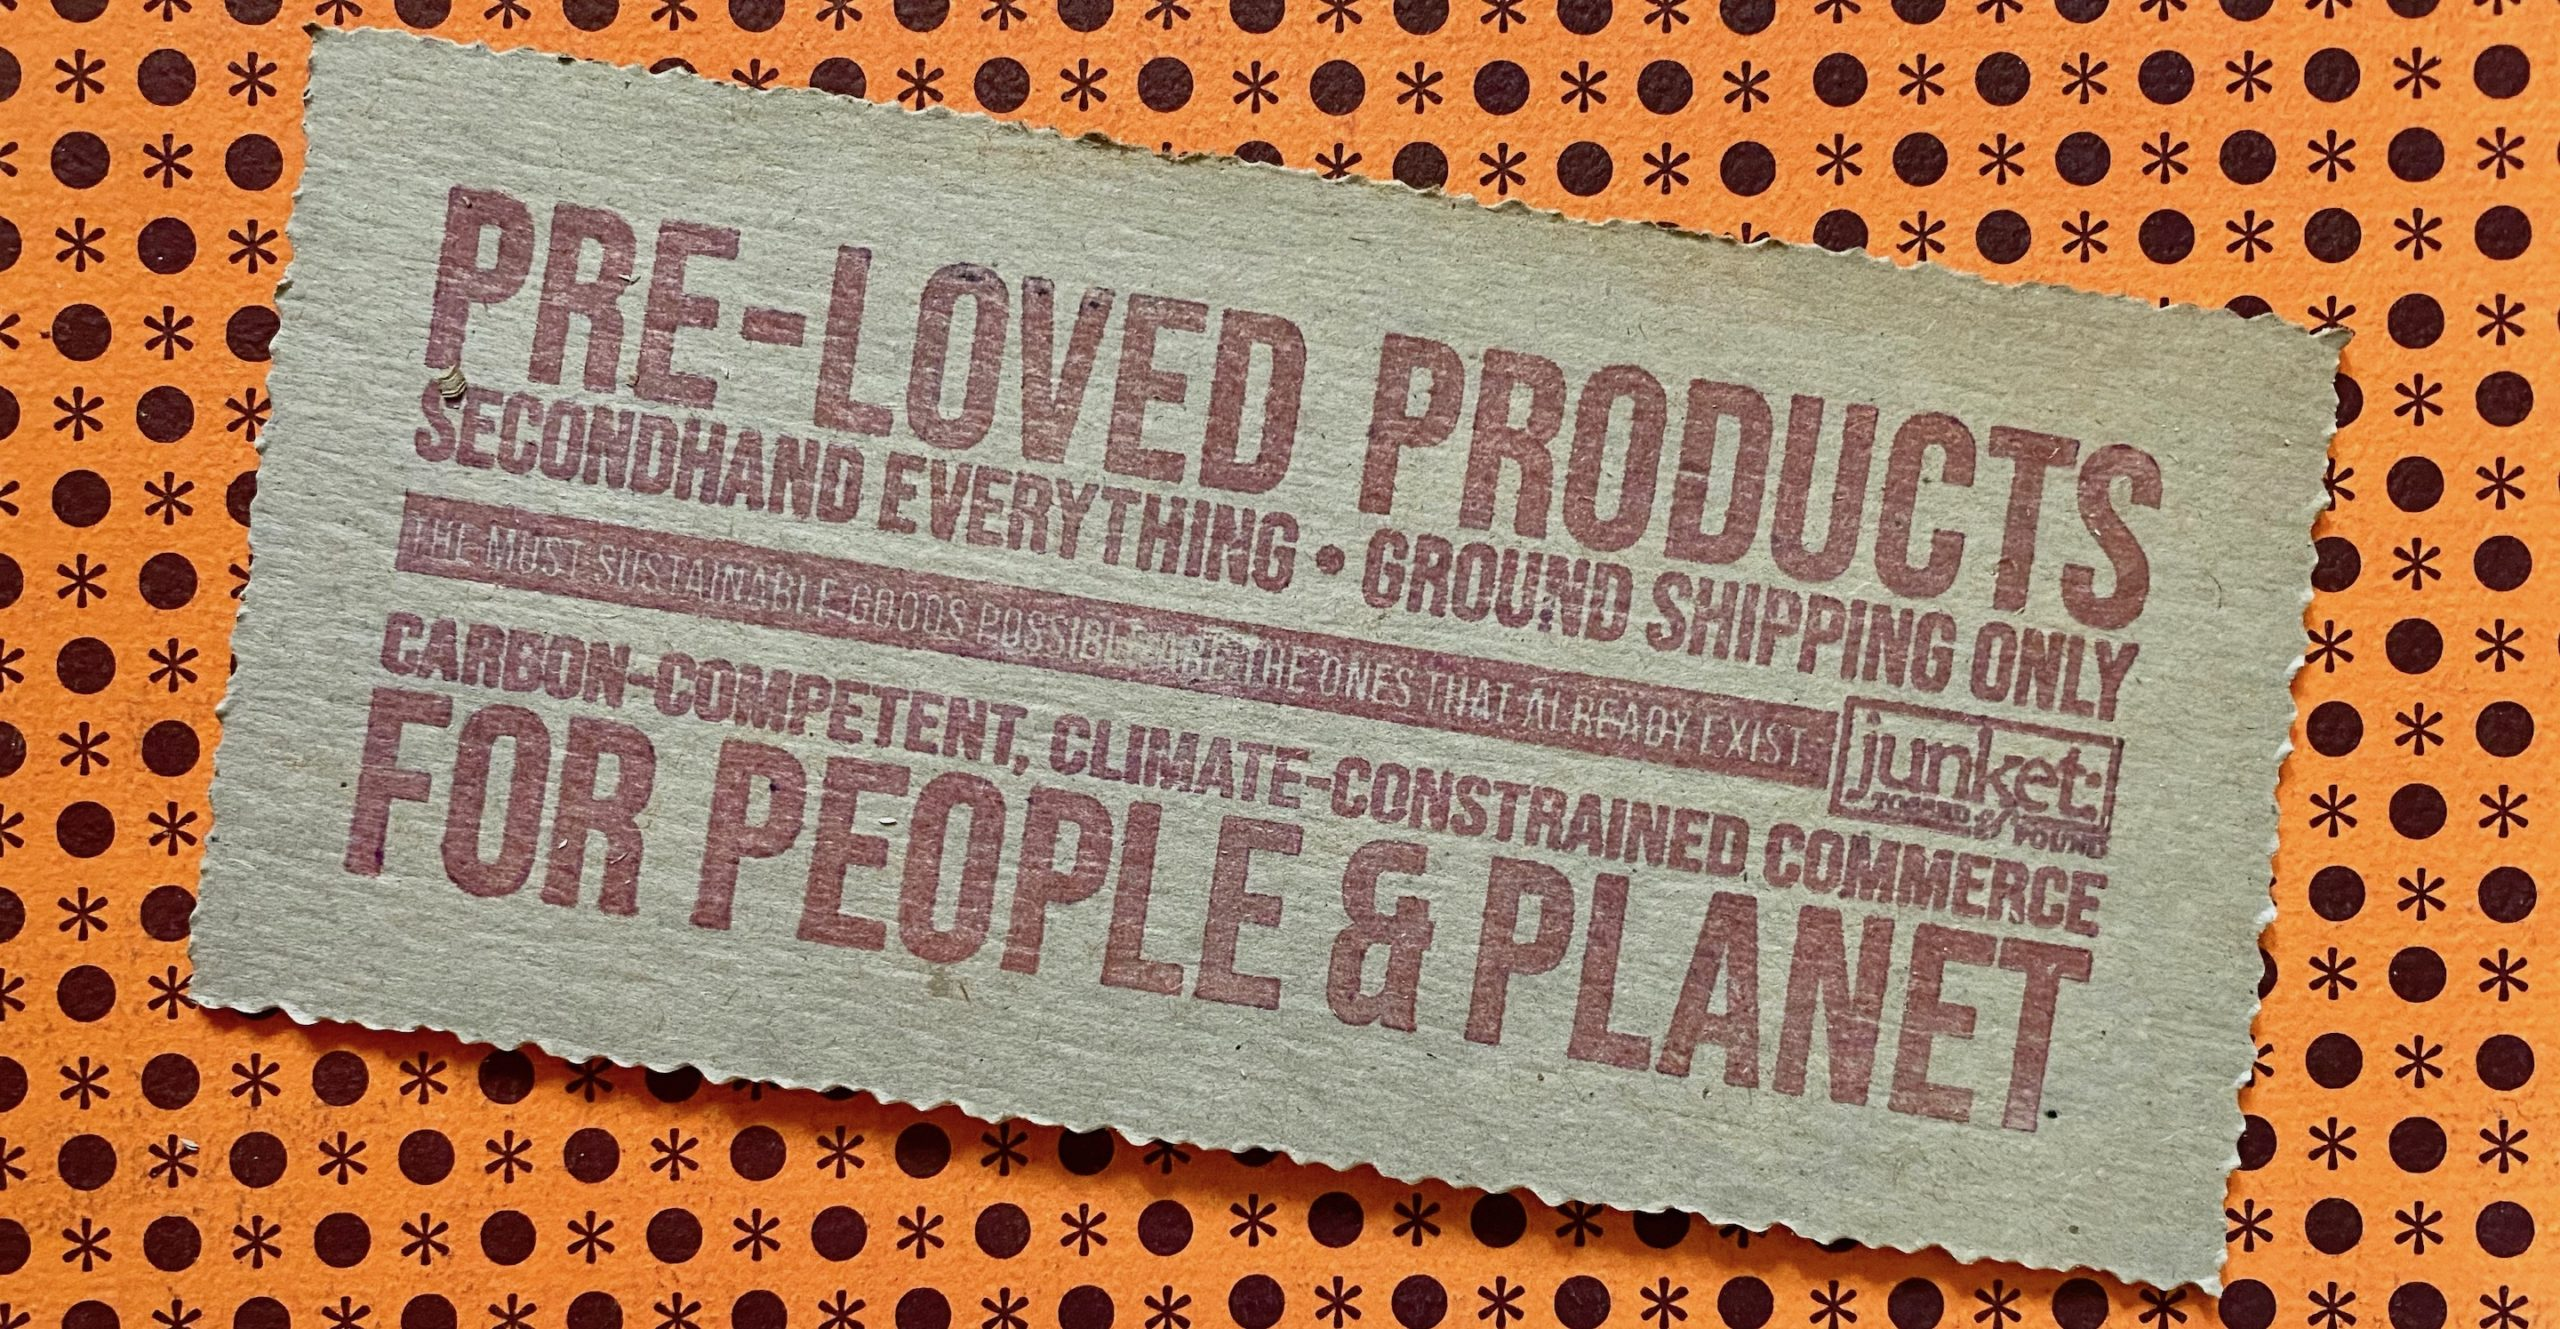 Intended to communicate that this is a business that sells secondhand goods with an environmental and human oriented purpose.